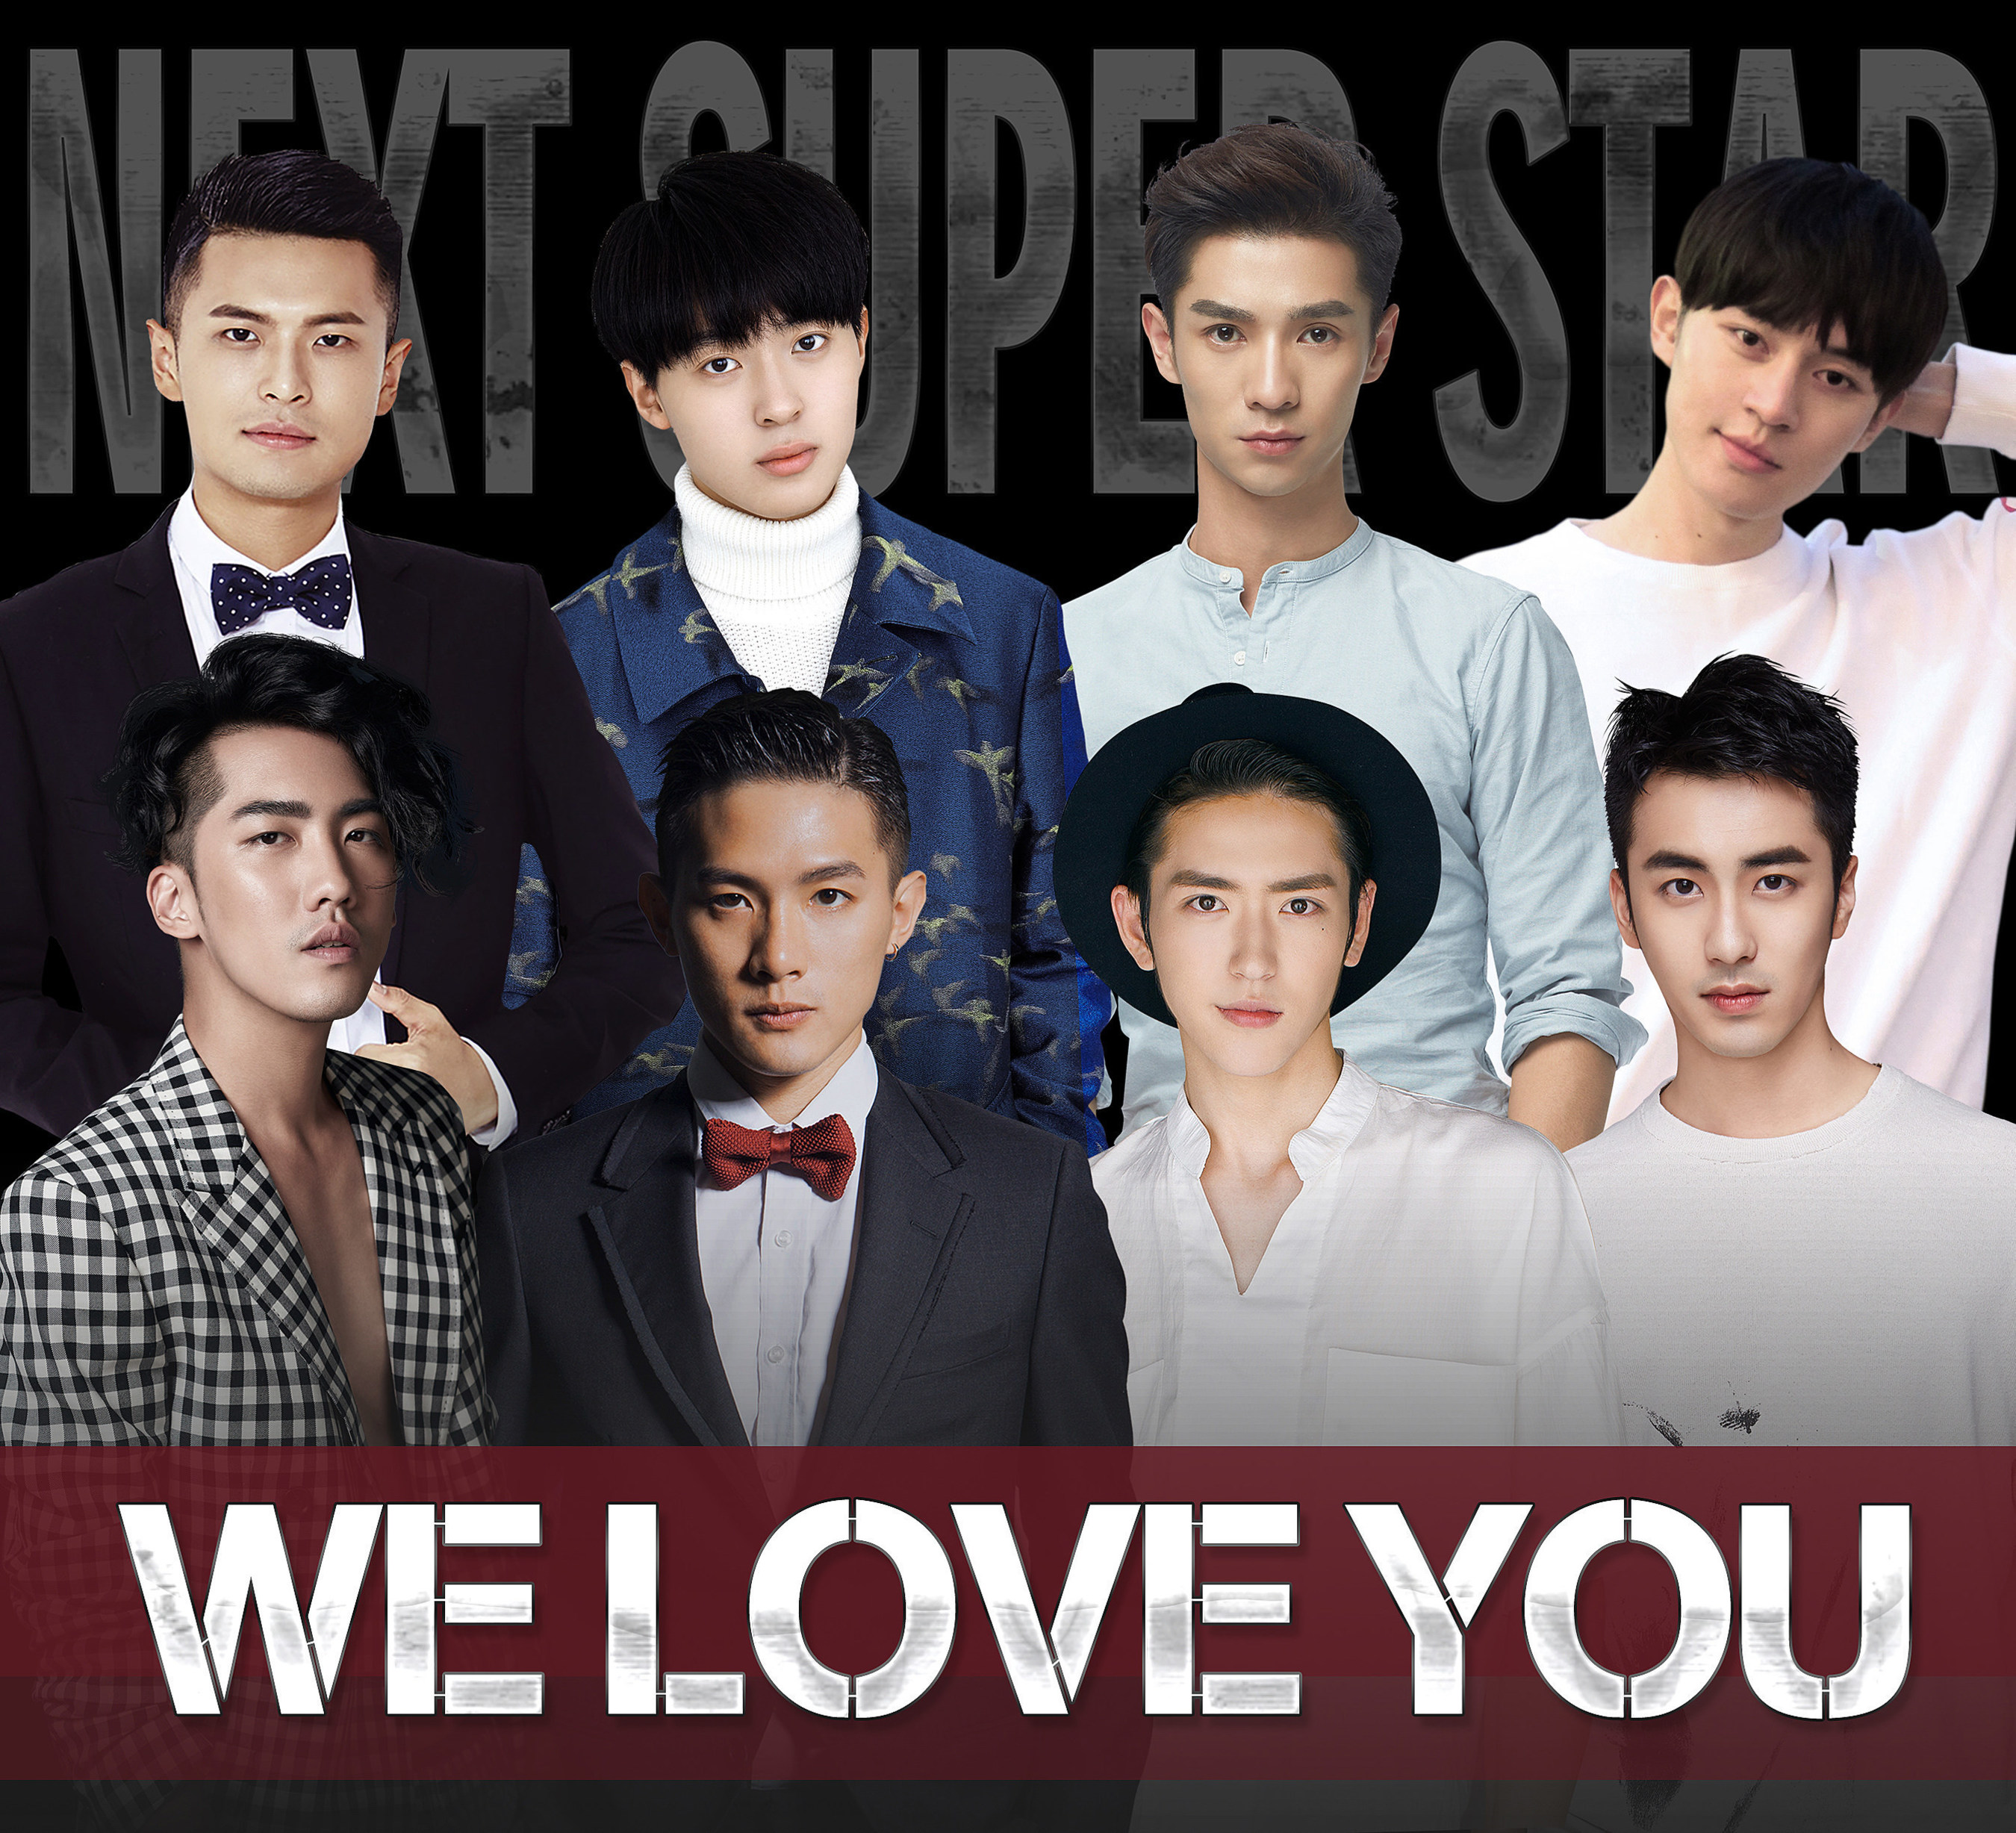 Next Super Star: Love from Chinese Fans